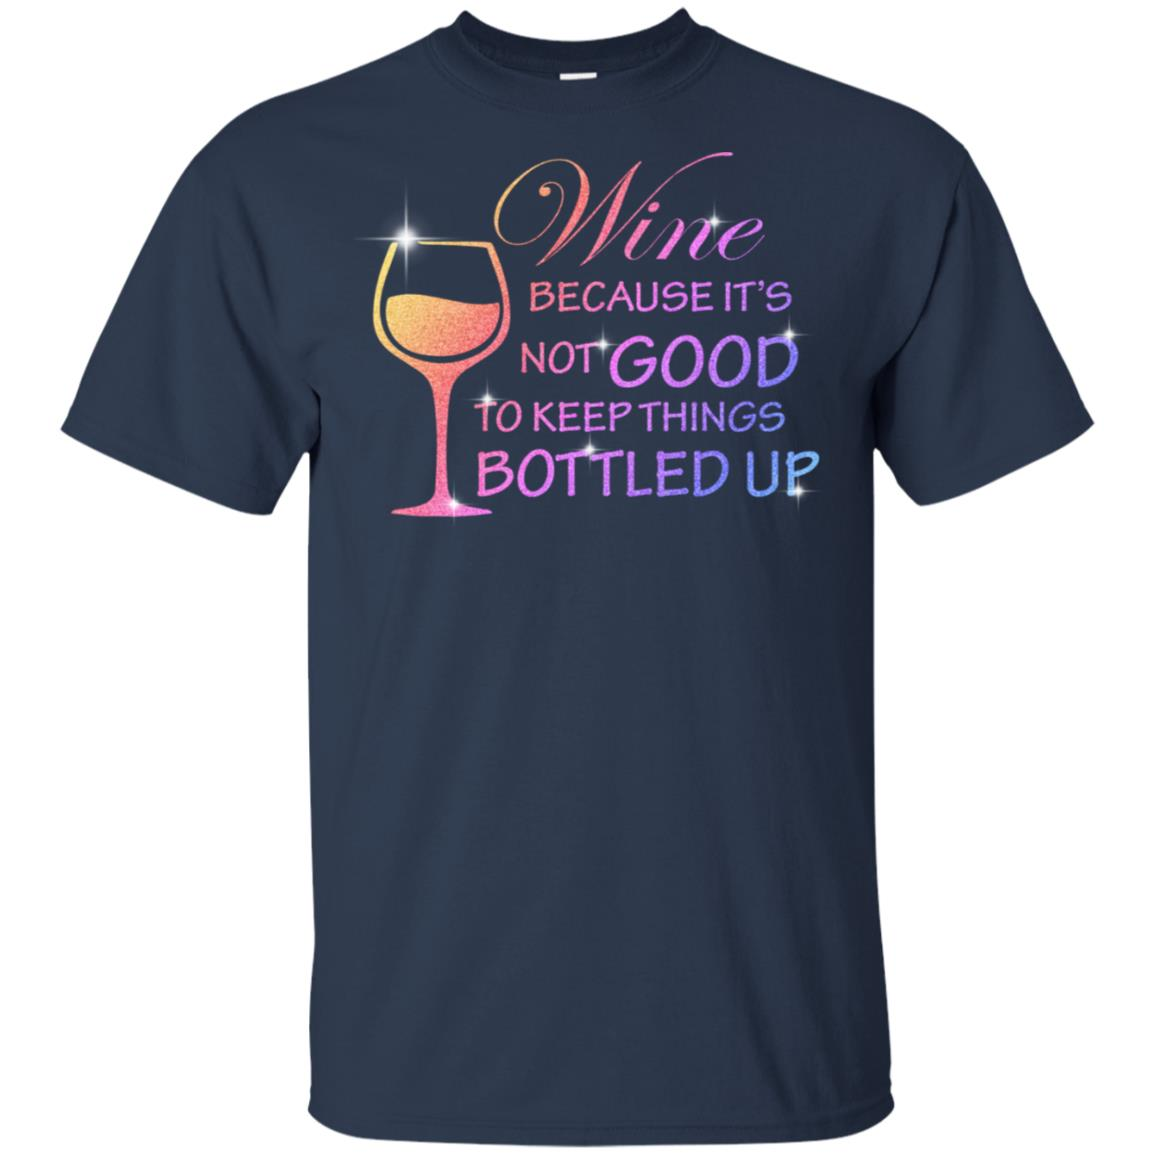 Wine Because It's Not Good To Keep Things Bottled Up Unisex Short Sleeve